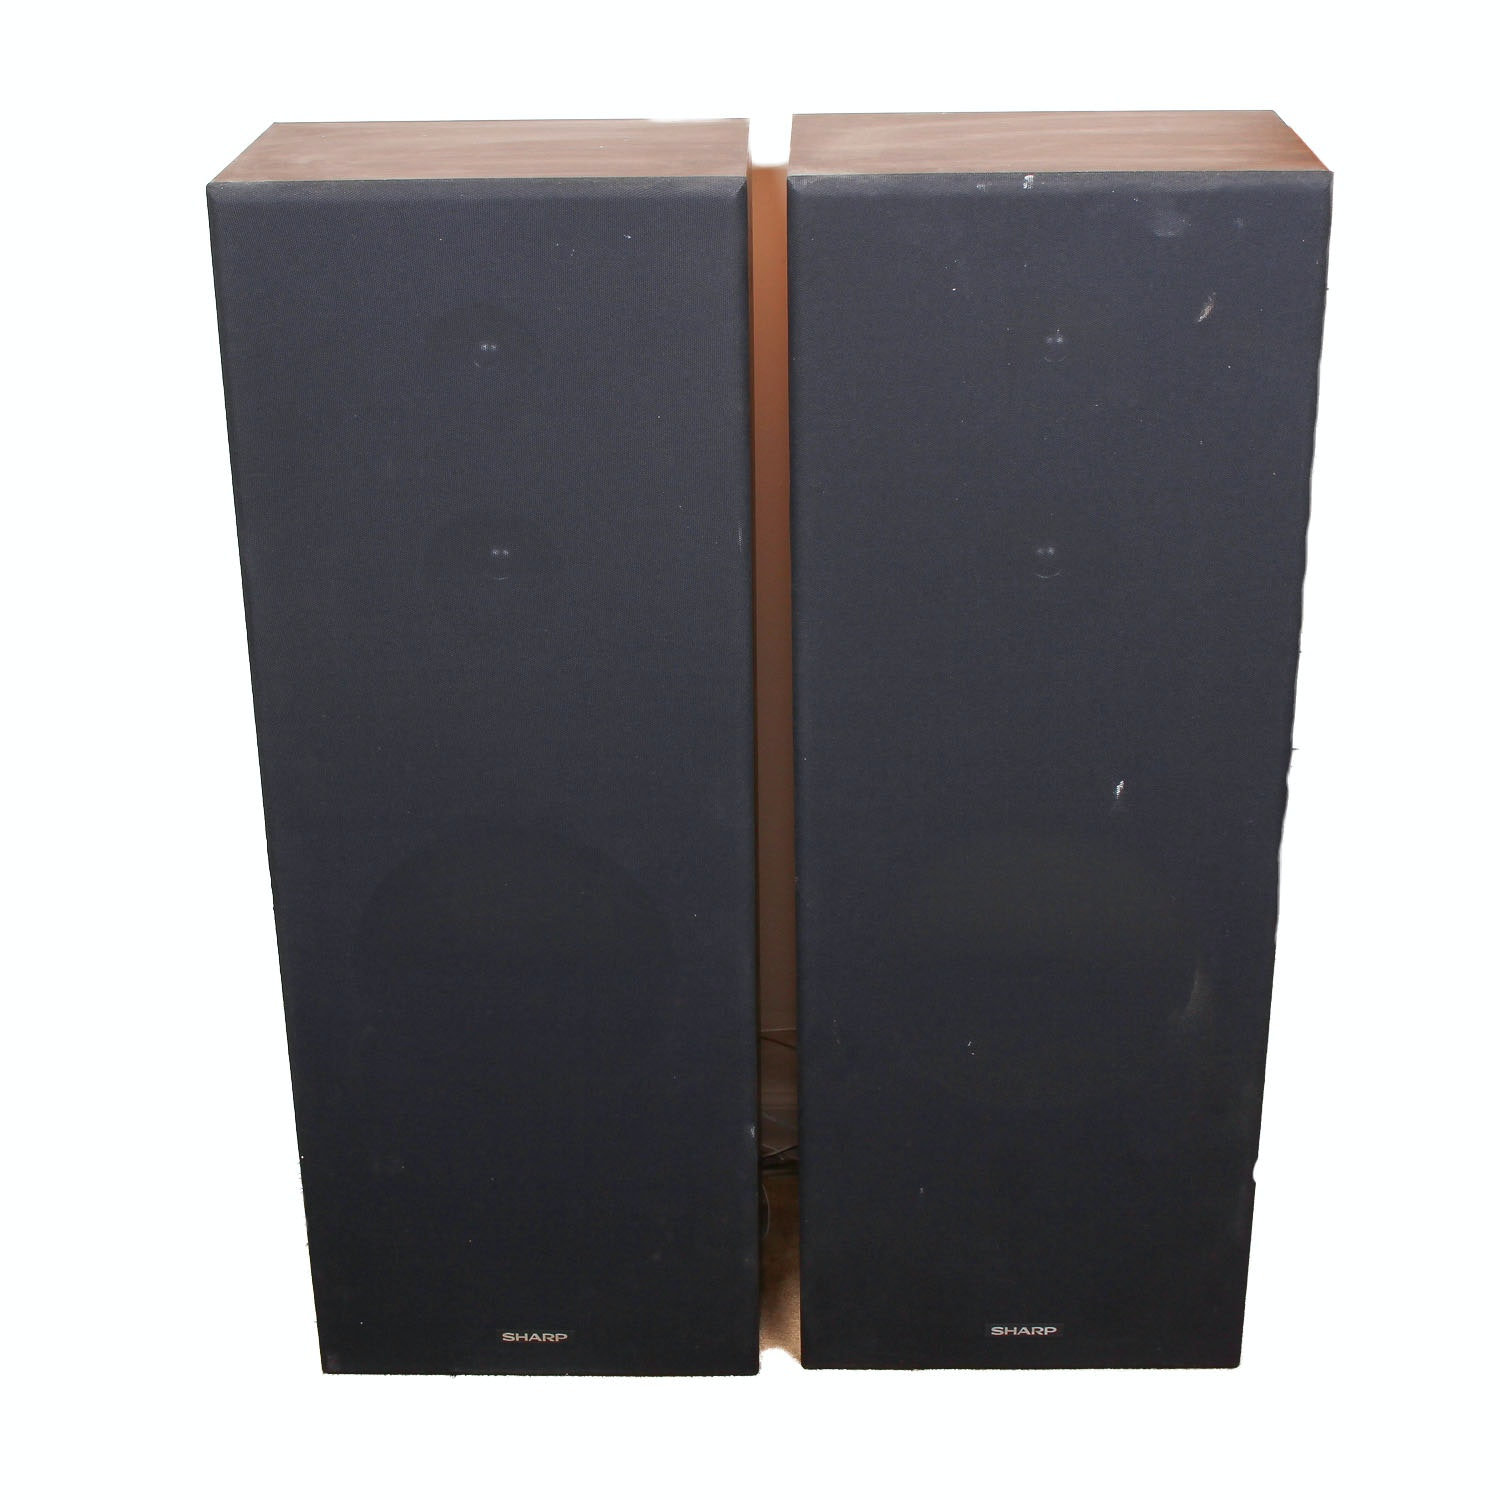 Two Sharp Stereo Speakers